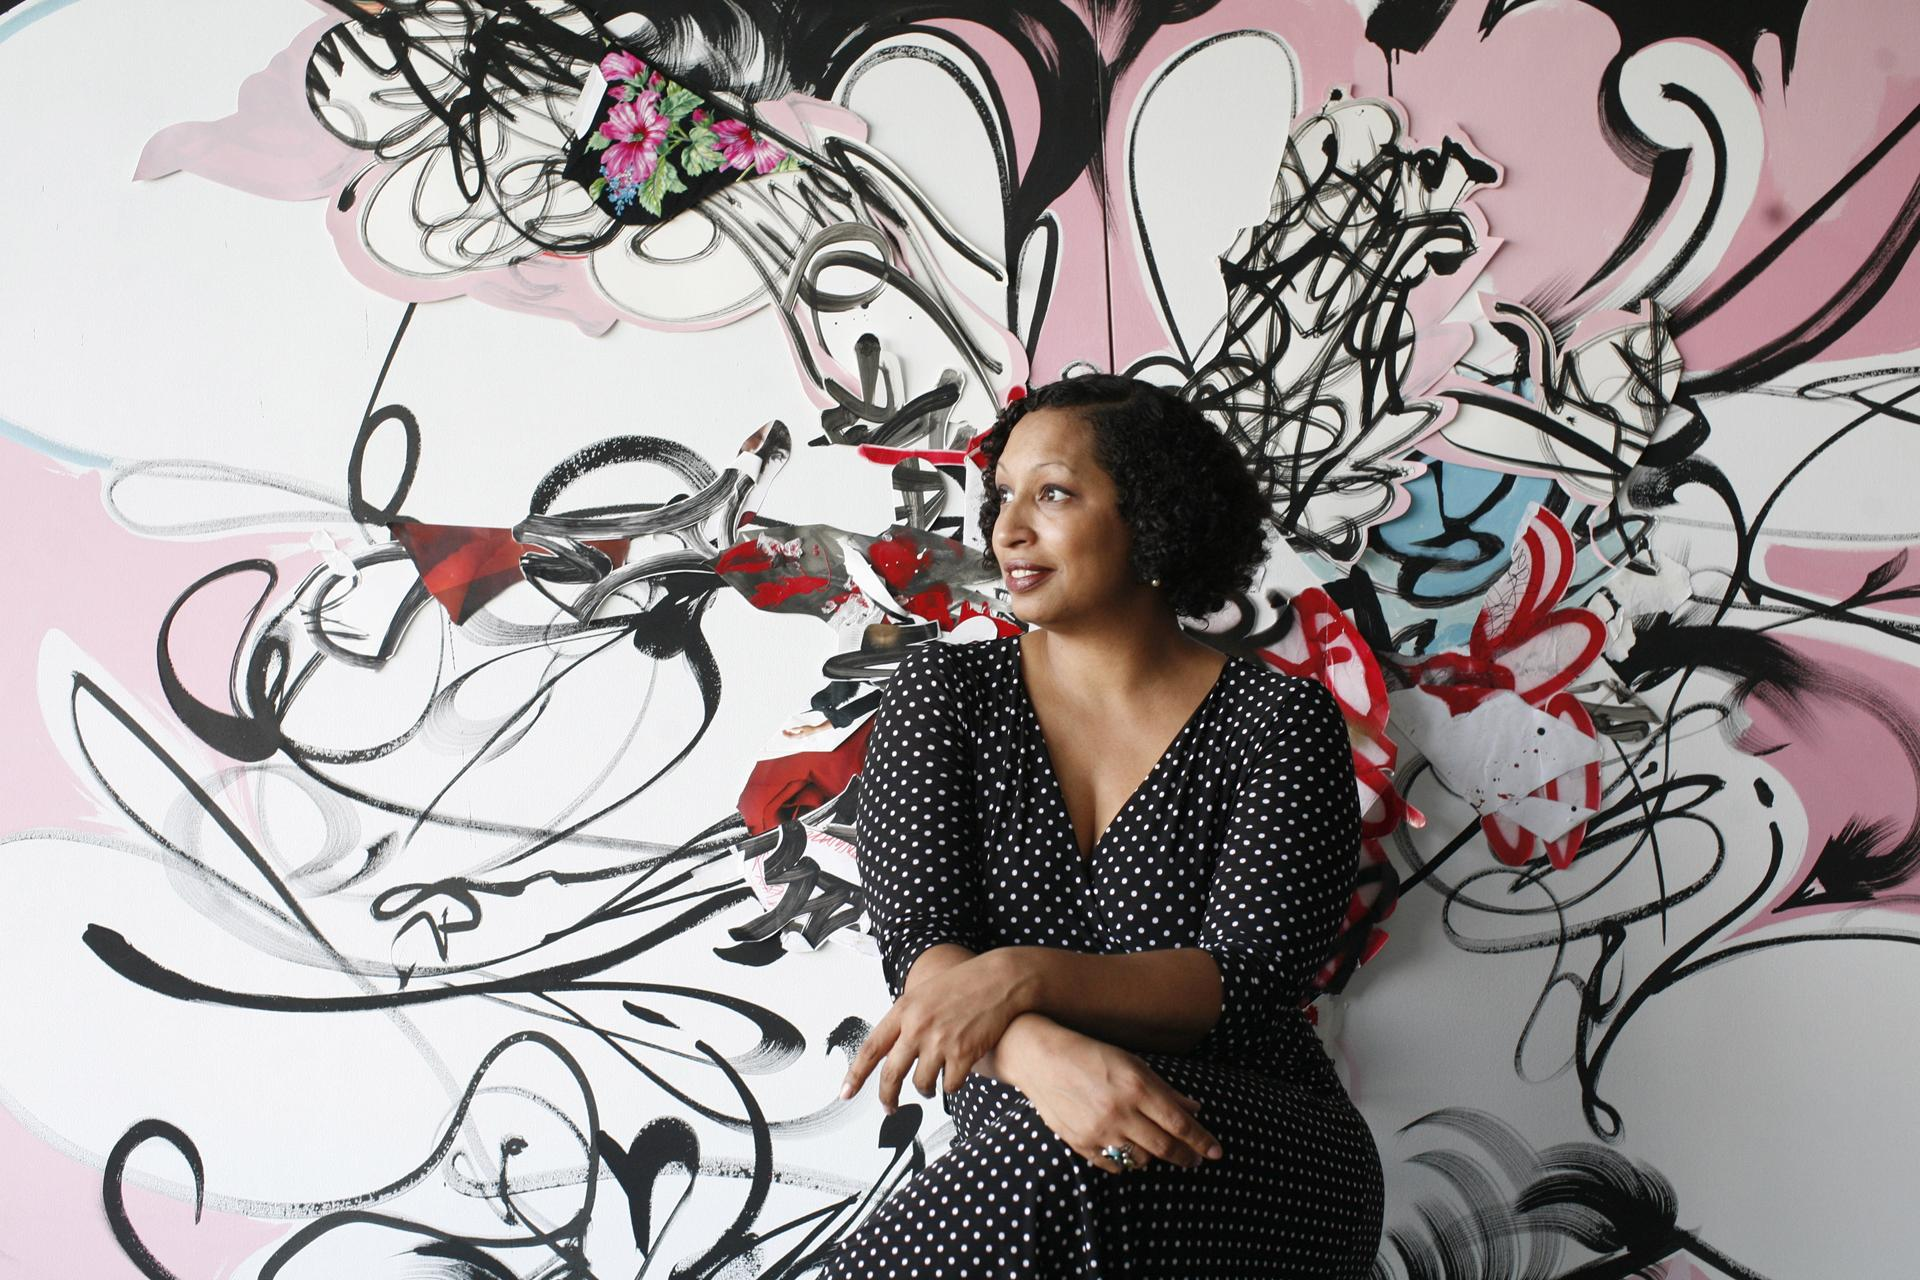 Later This Summer New York Based Shinique Smith Who Uses Bright Colors And